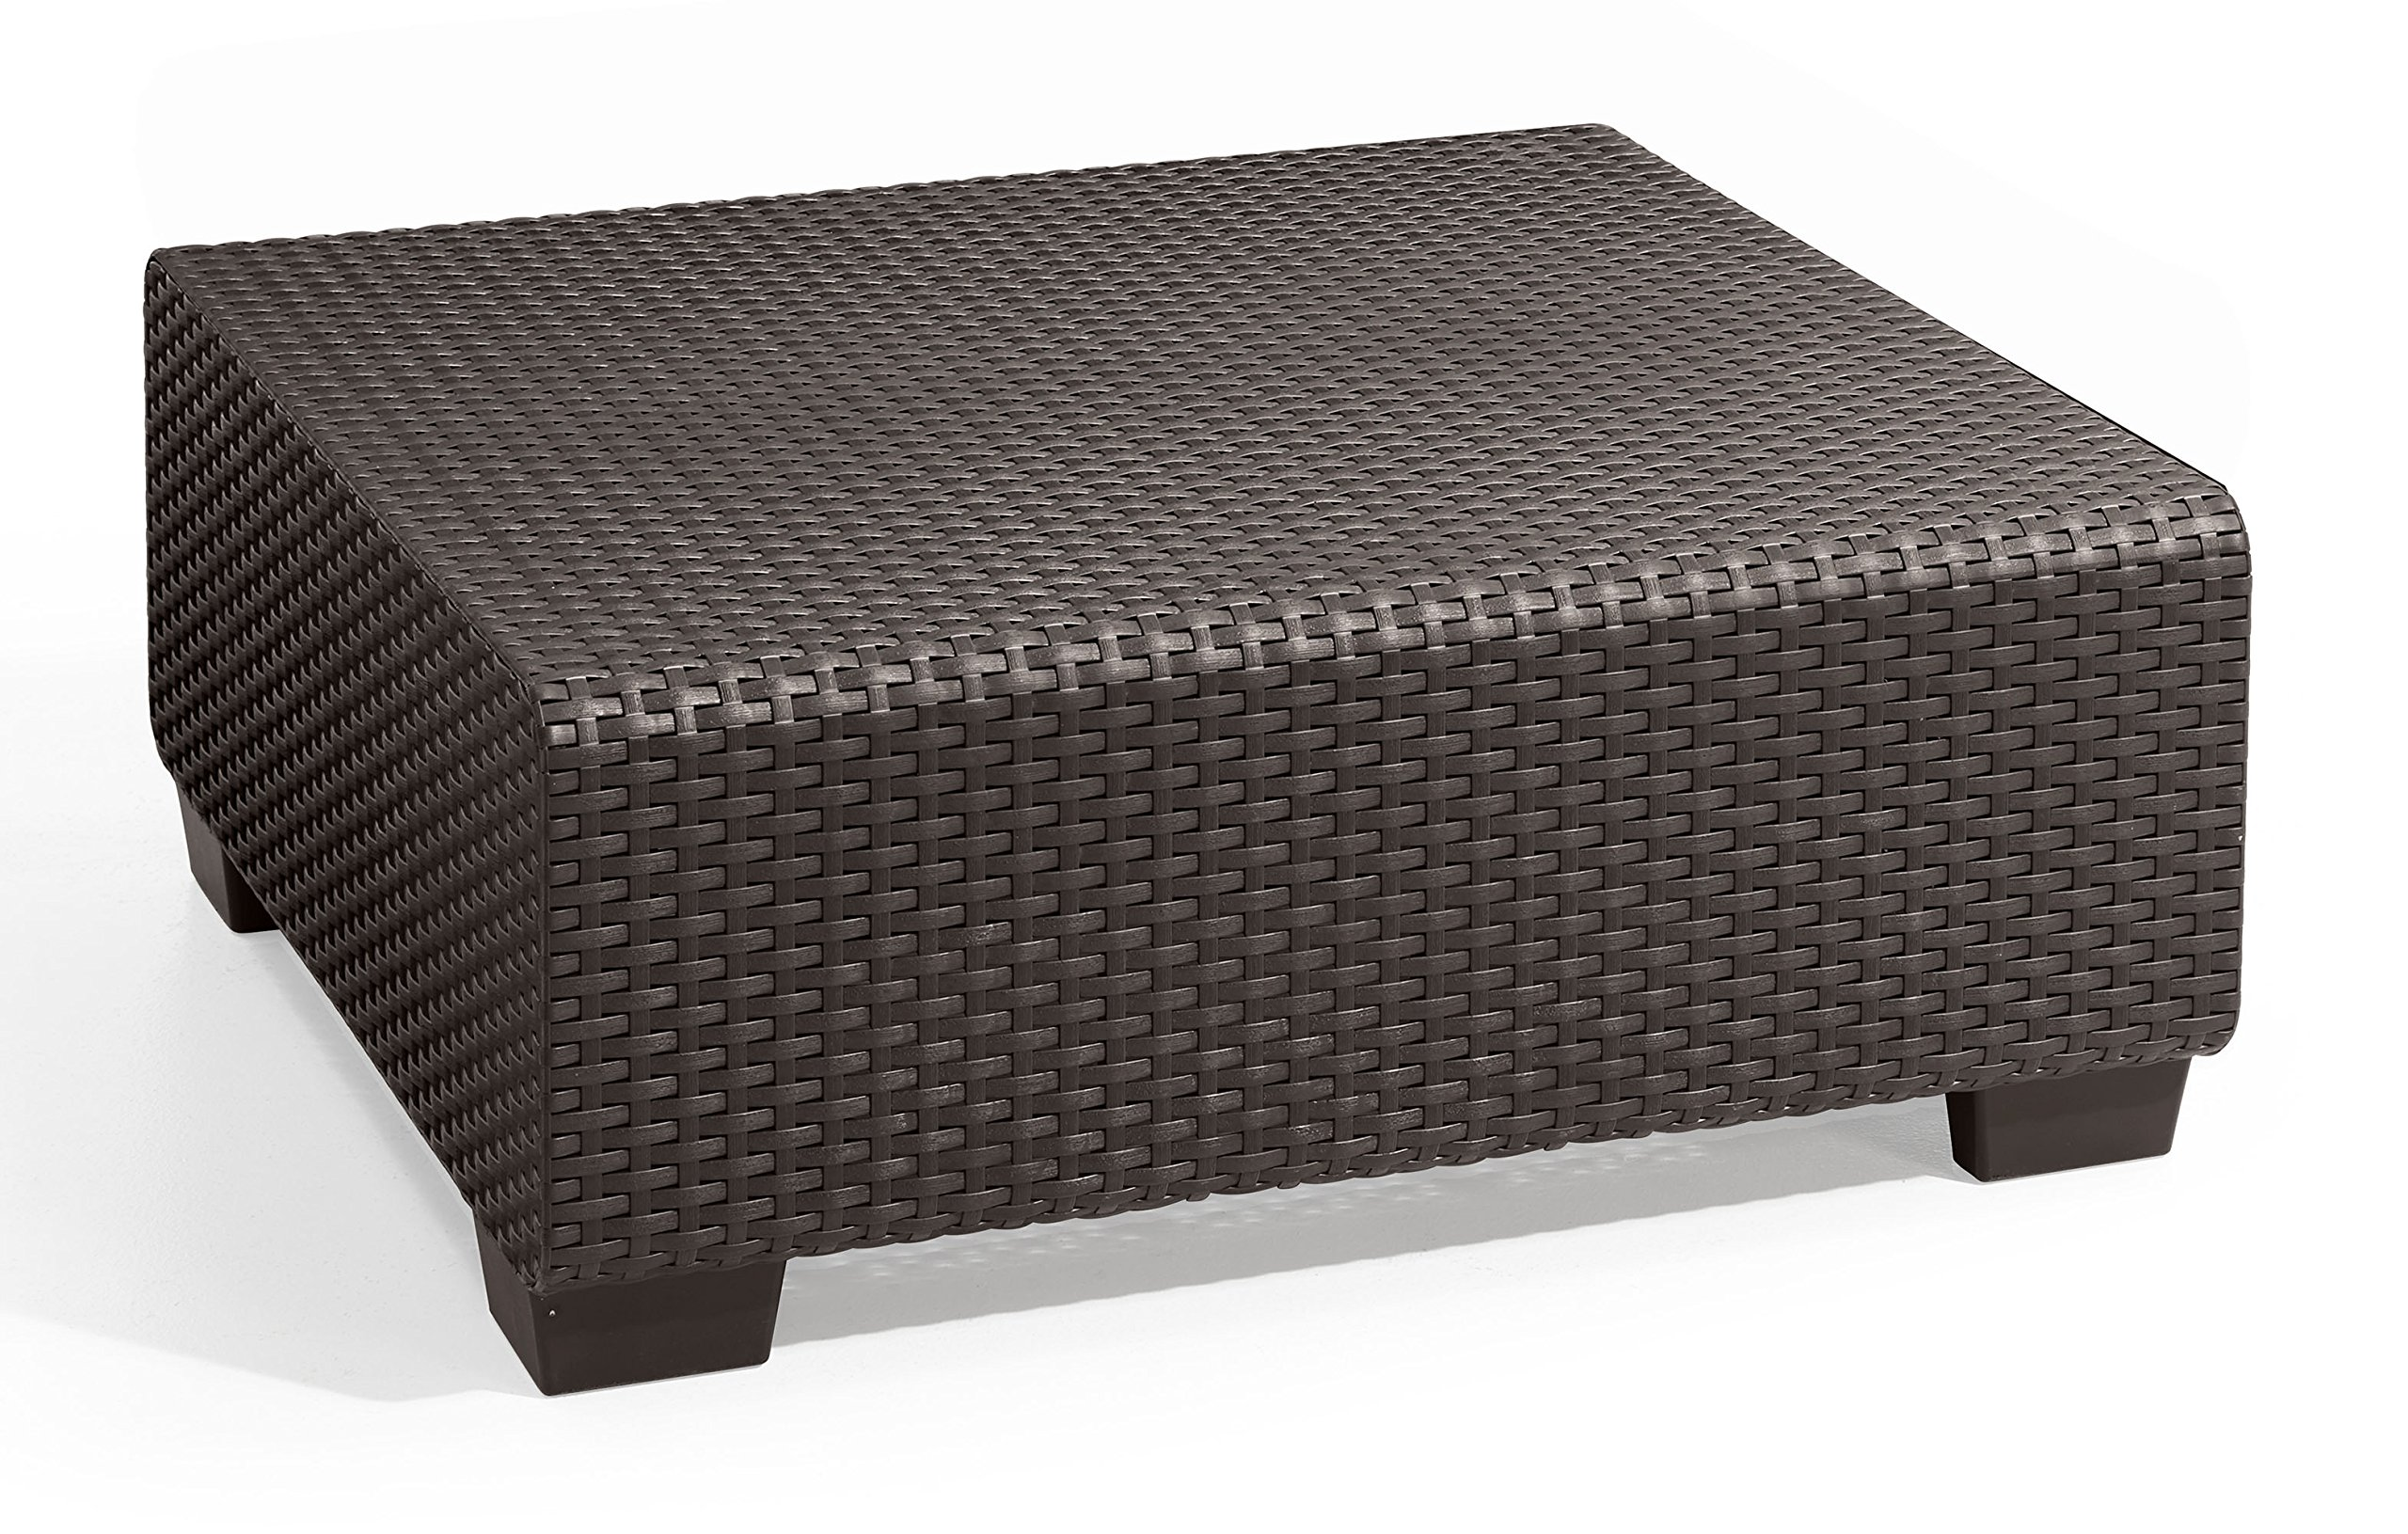 Keter Salta Coffee Table Modern All Weather Outdoor Patio Garden Backyard Furniture, Rich Brown